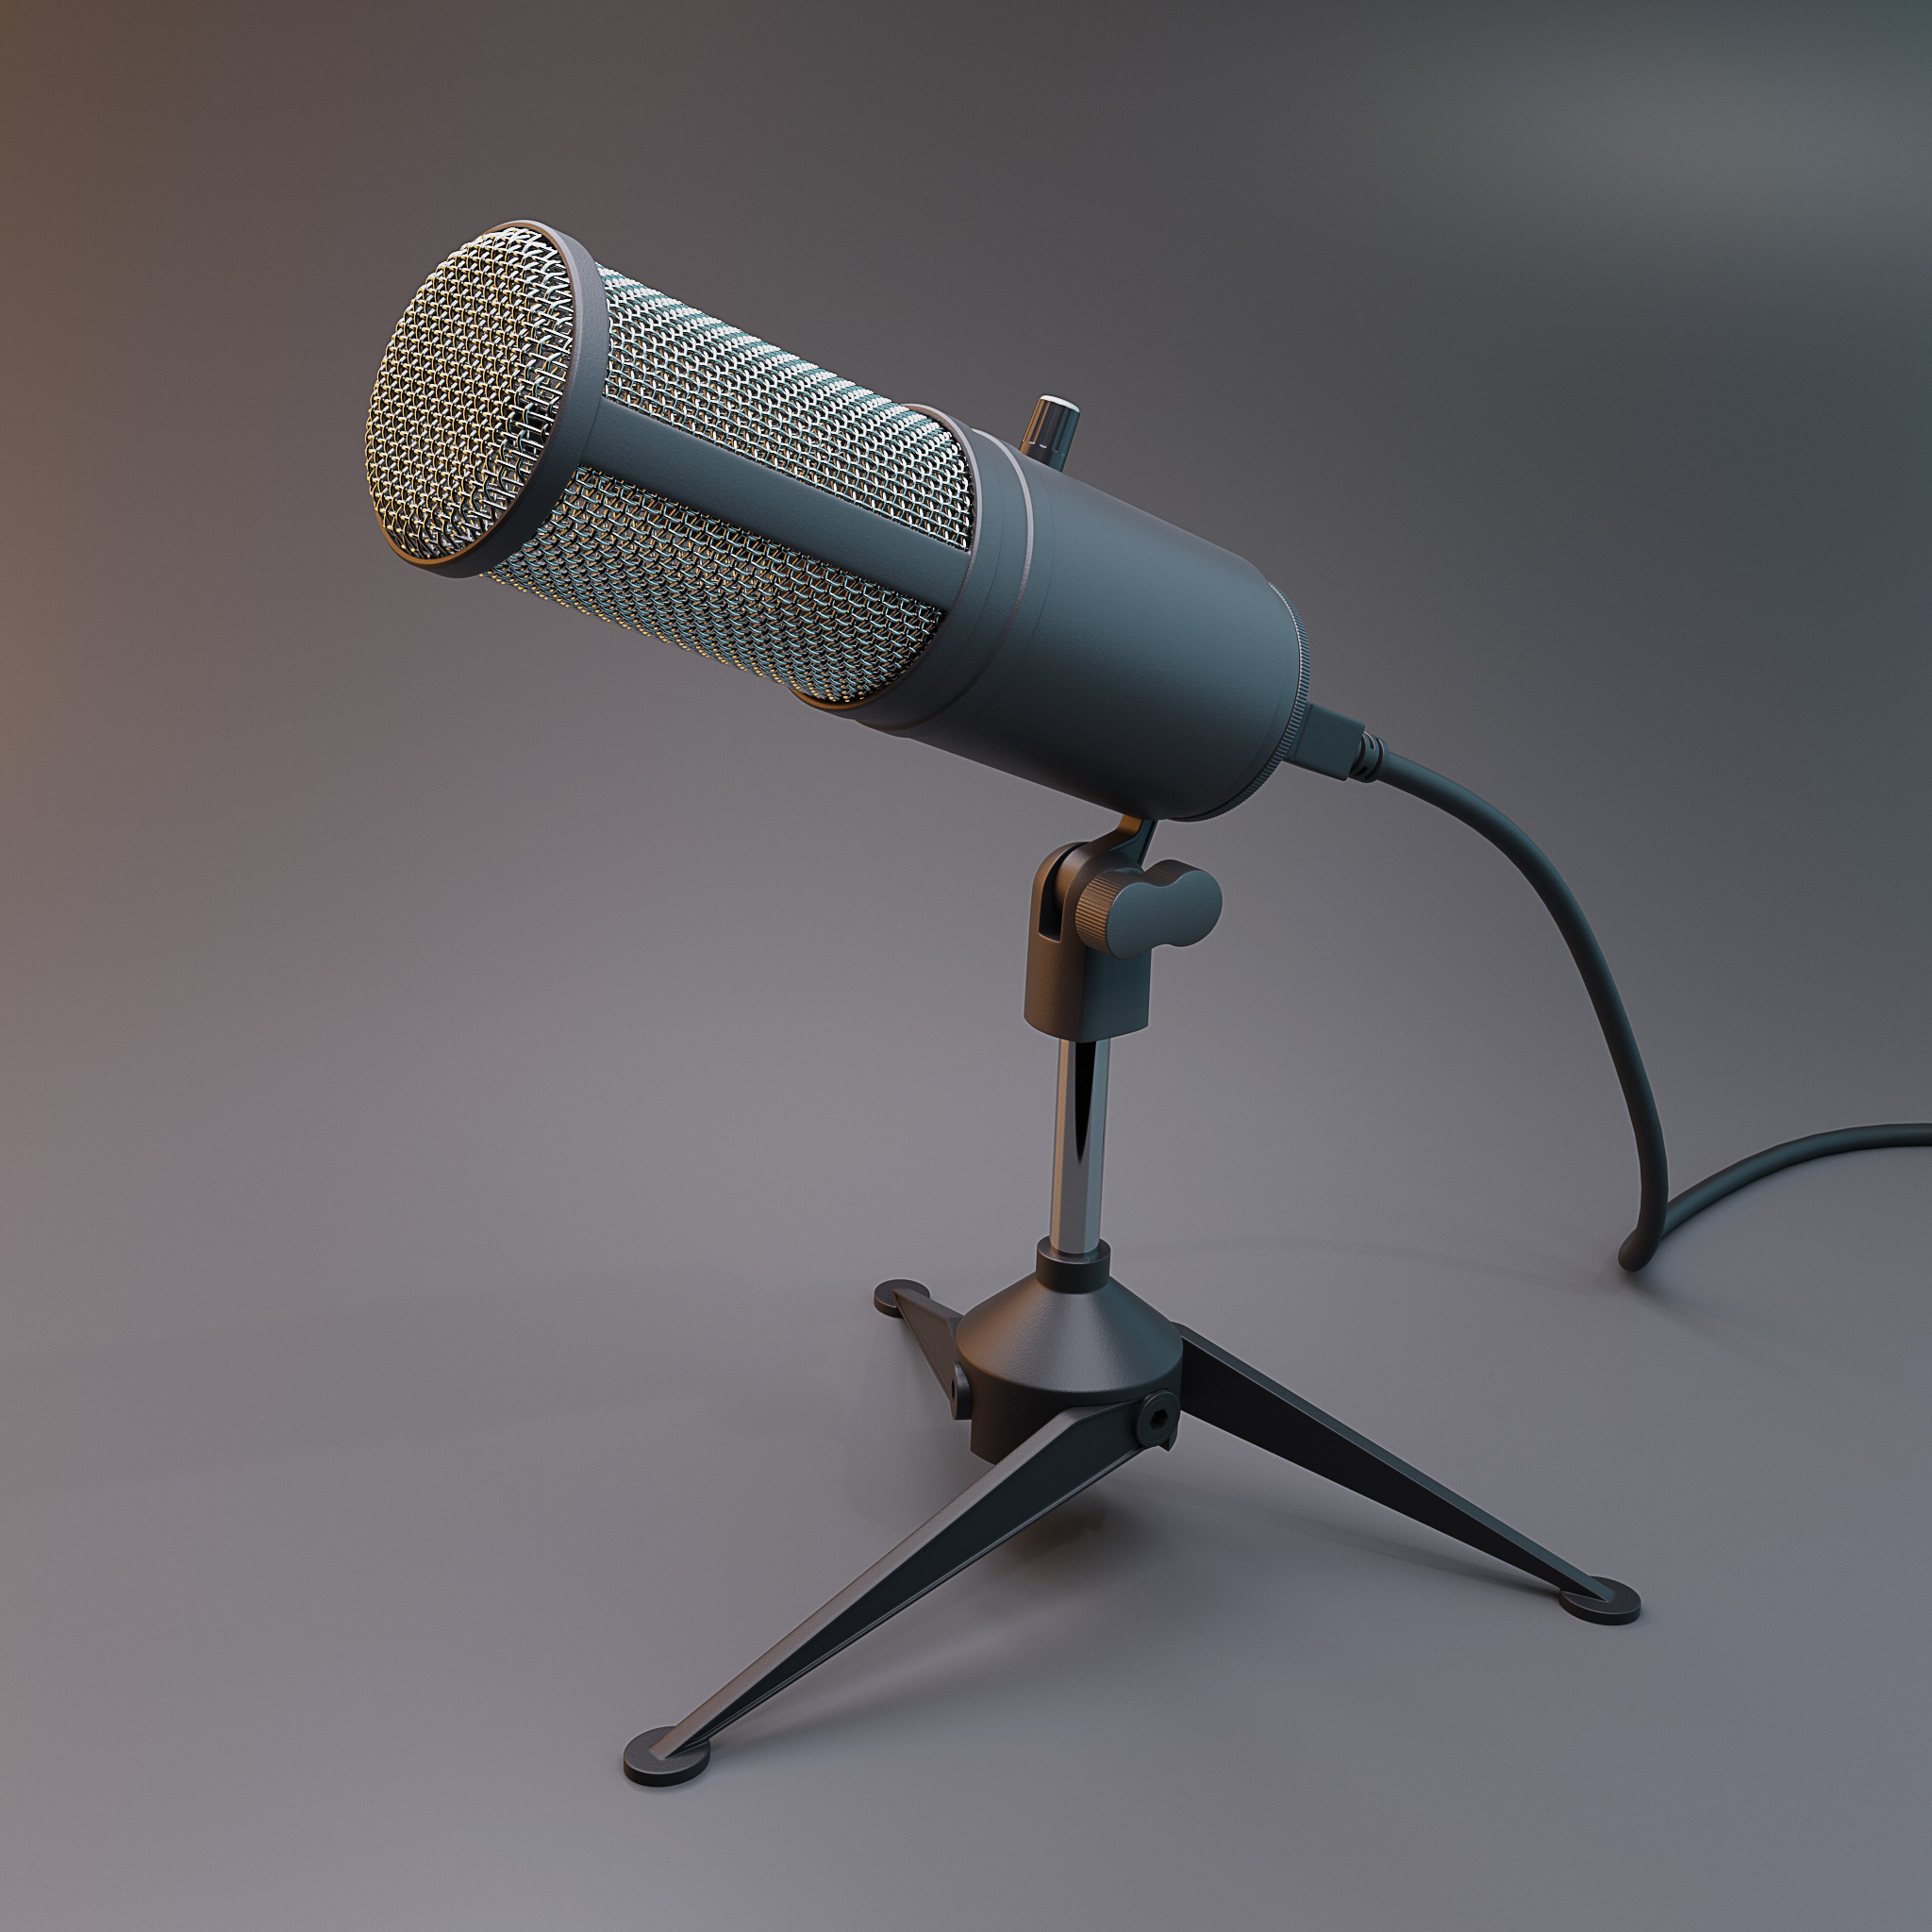 Microphone preview image 1